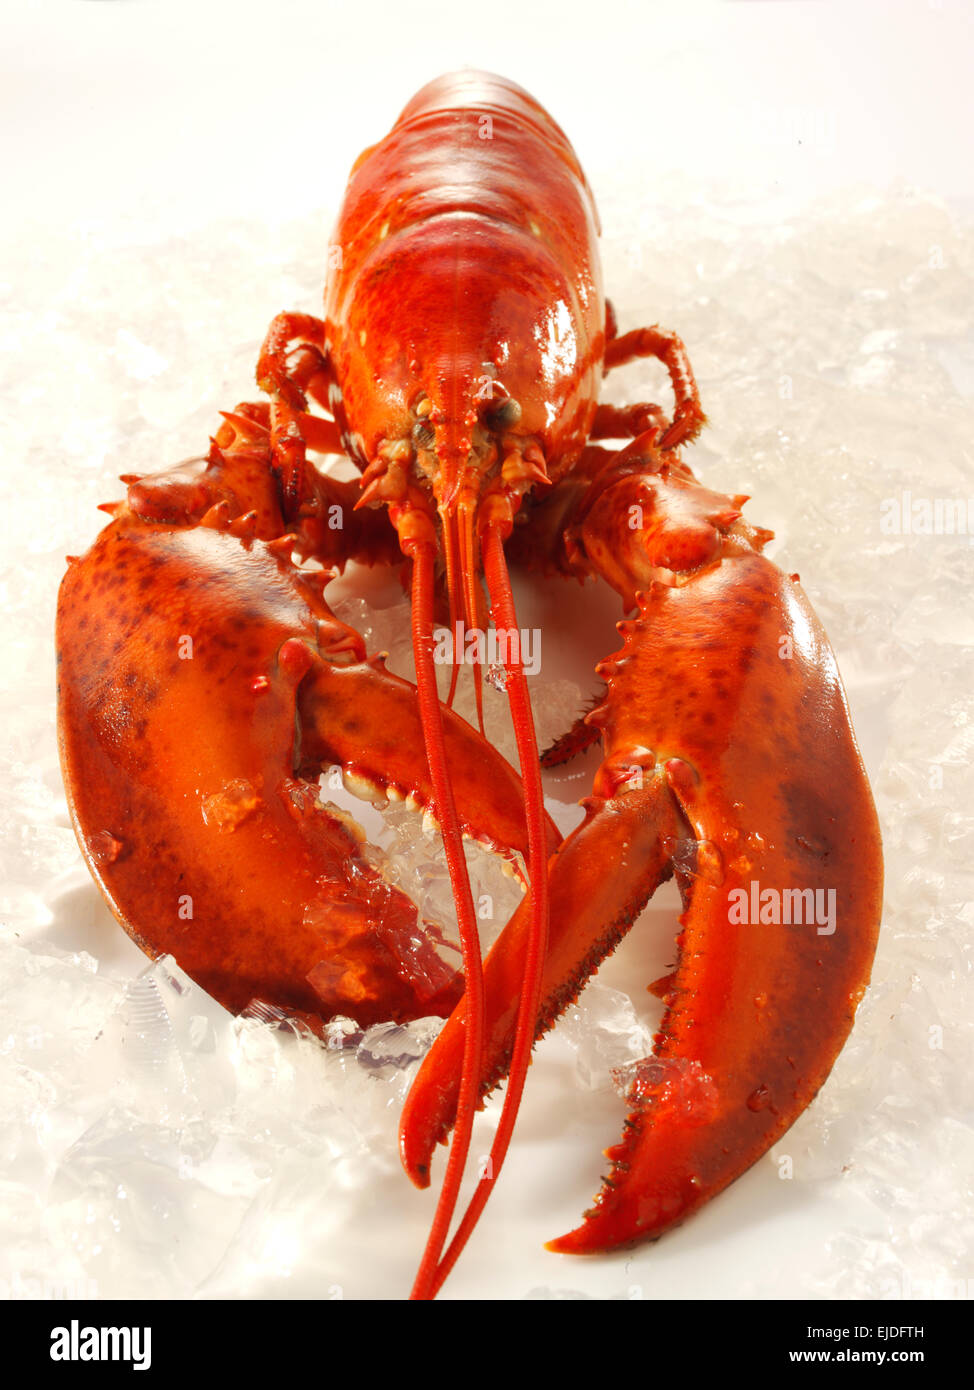 fresh whole cooked lobster on crushed ice - Stock Image